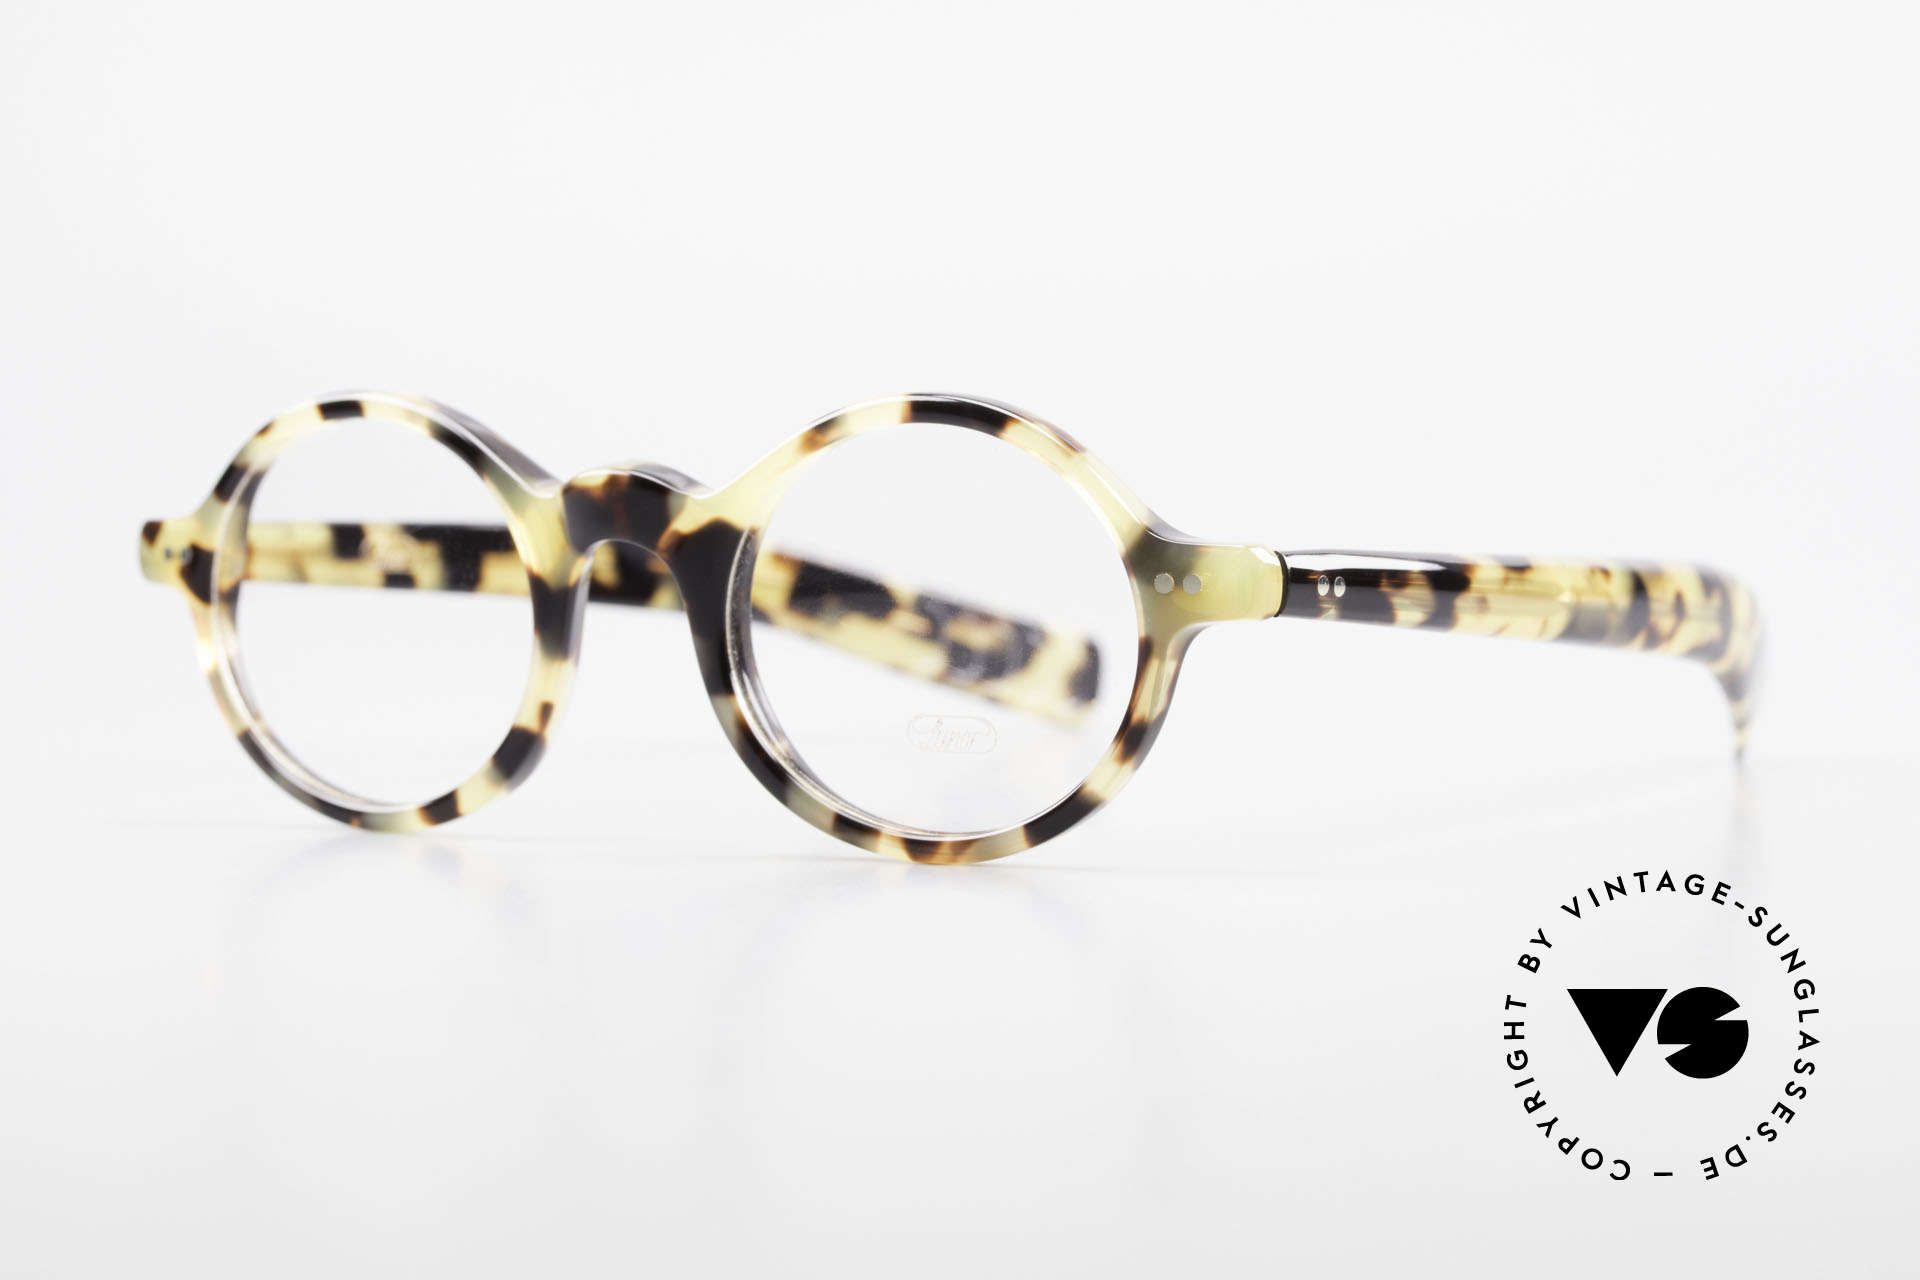 """Lunor A52 Oval Lunor Glasses Acetate, oval frame with a stylish """"TOKYO TORTOISE"""" pattern, Made for Men and Women"""